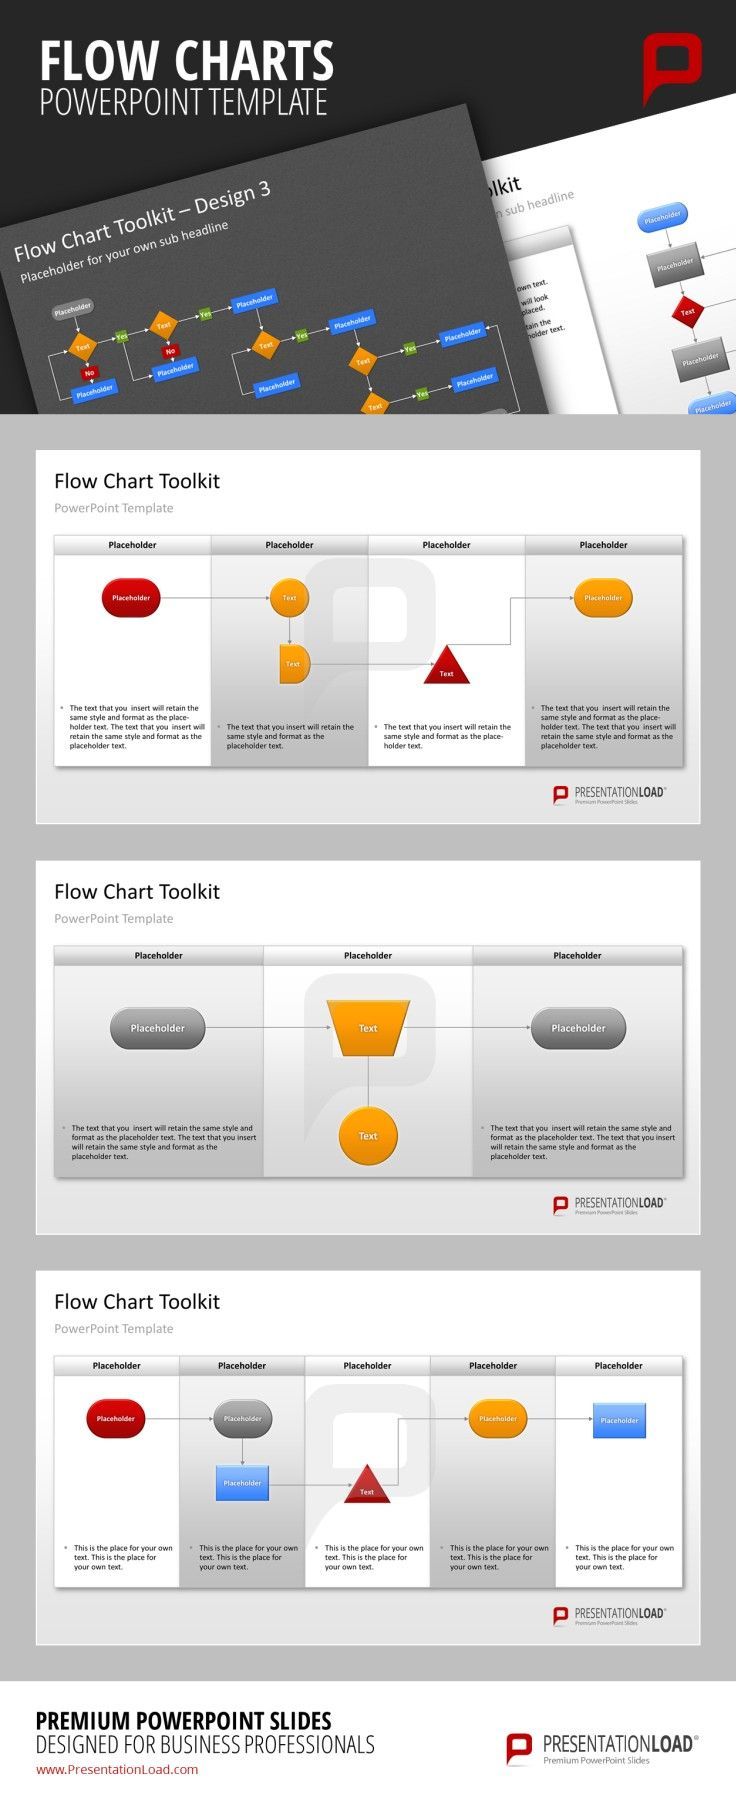 Flow charts powerpoint templates you can easily change the colors flow charts powerpoint templates you can easily change the colors of each individual charts according to your needs presentationload present nvjuhfo Images